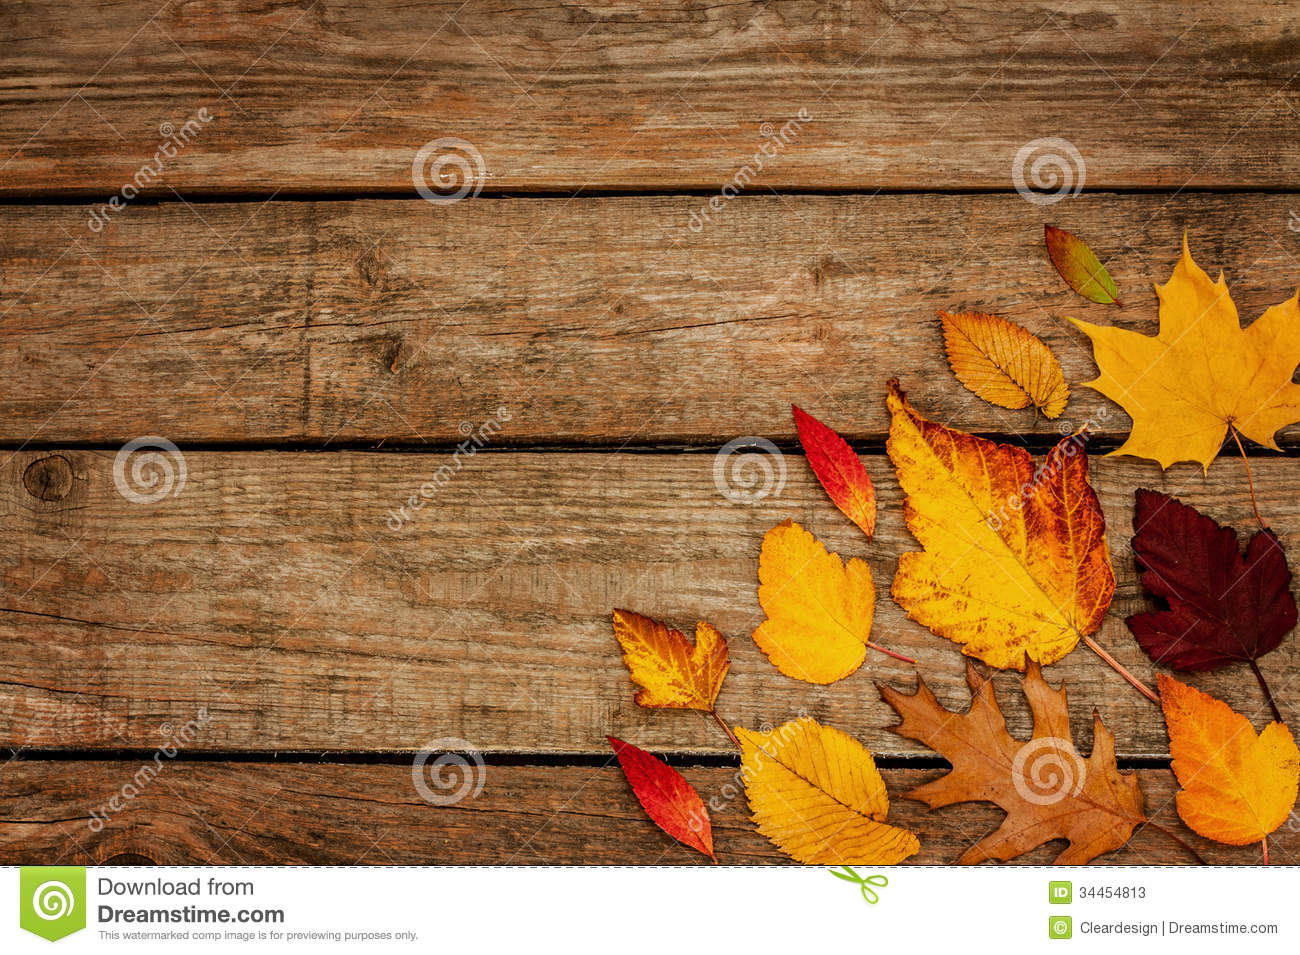 Fall Wallpaper Border Autumn Background Different Shaped Leaves On Wood Stock